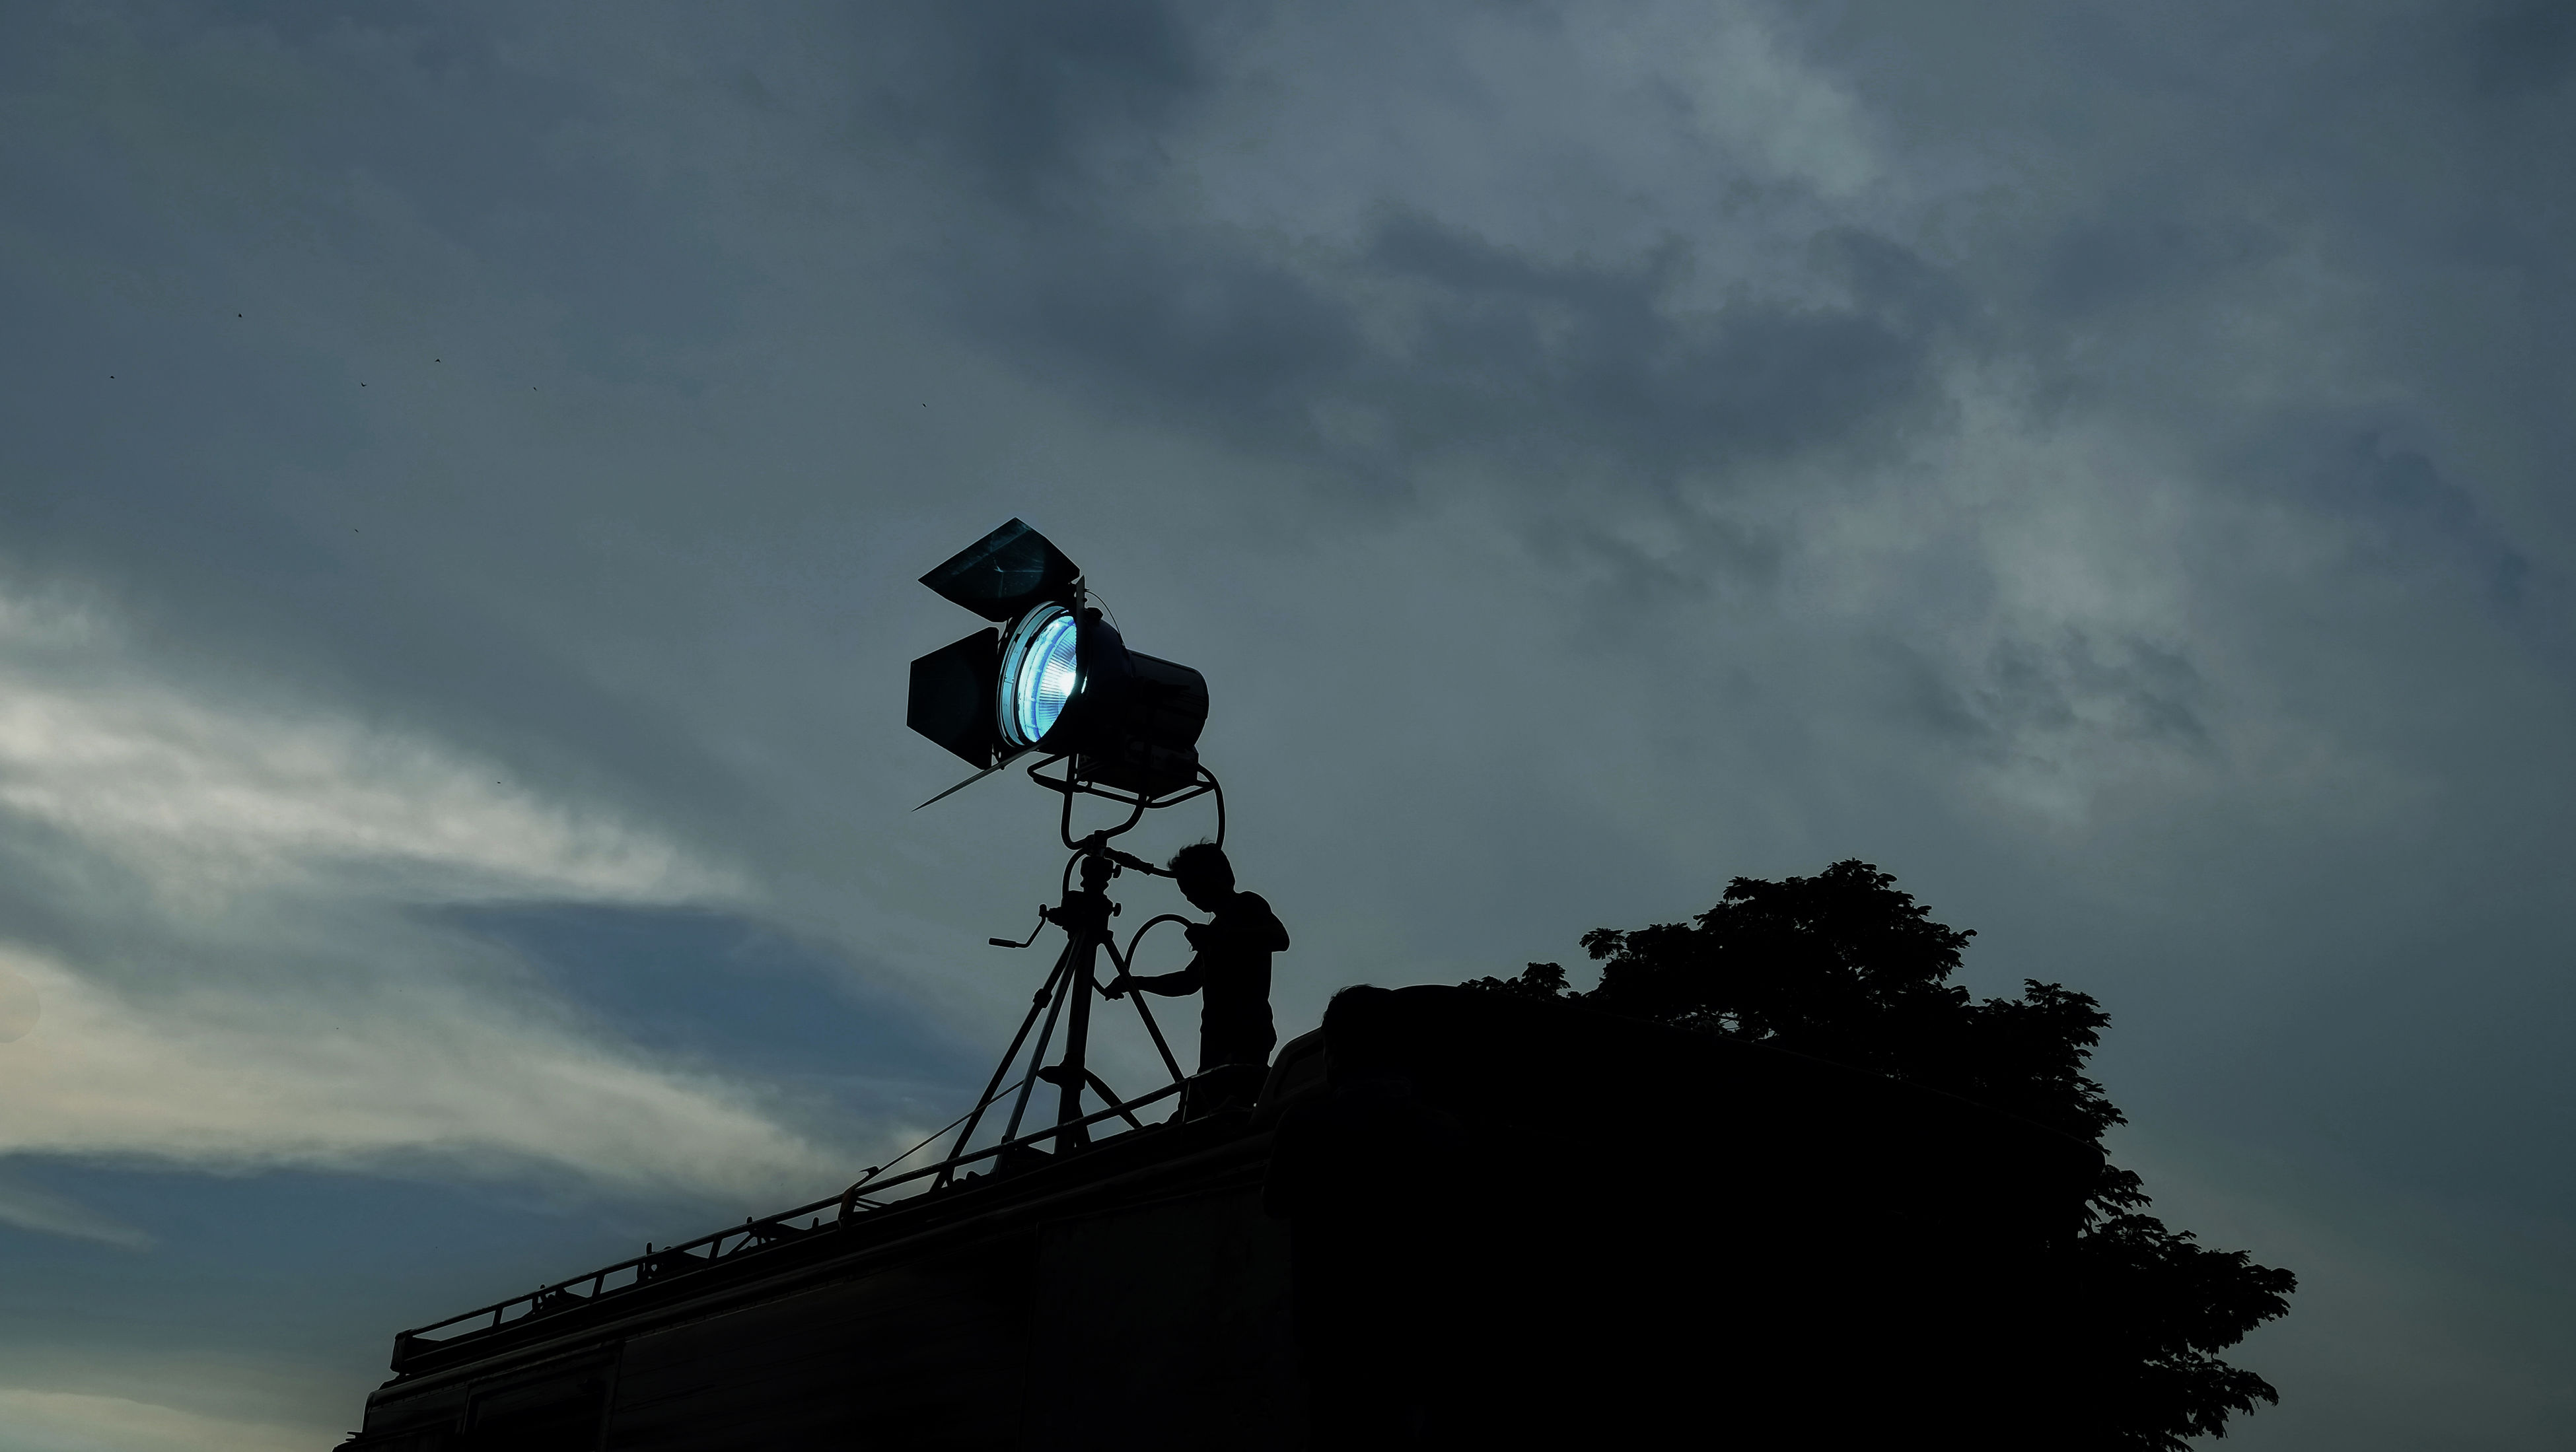 Low Angle View Of Silhouette Man Standing With Illuminated Lighting Equipment Against Cloudy Sky At Dusk